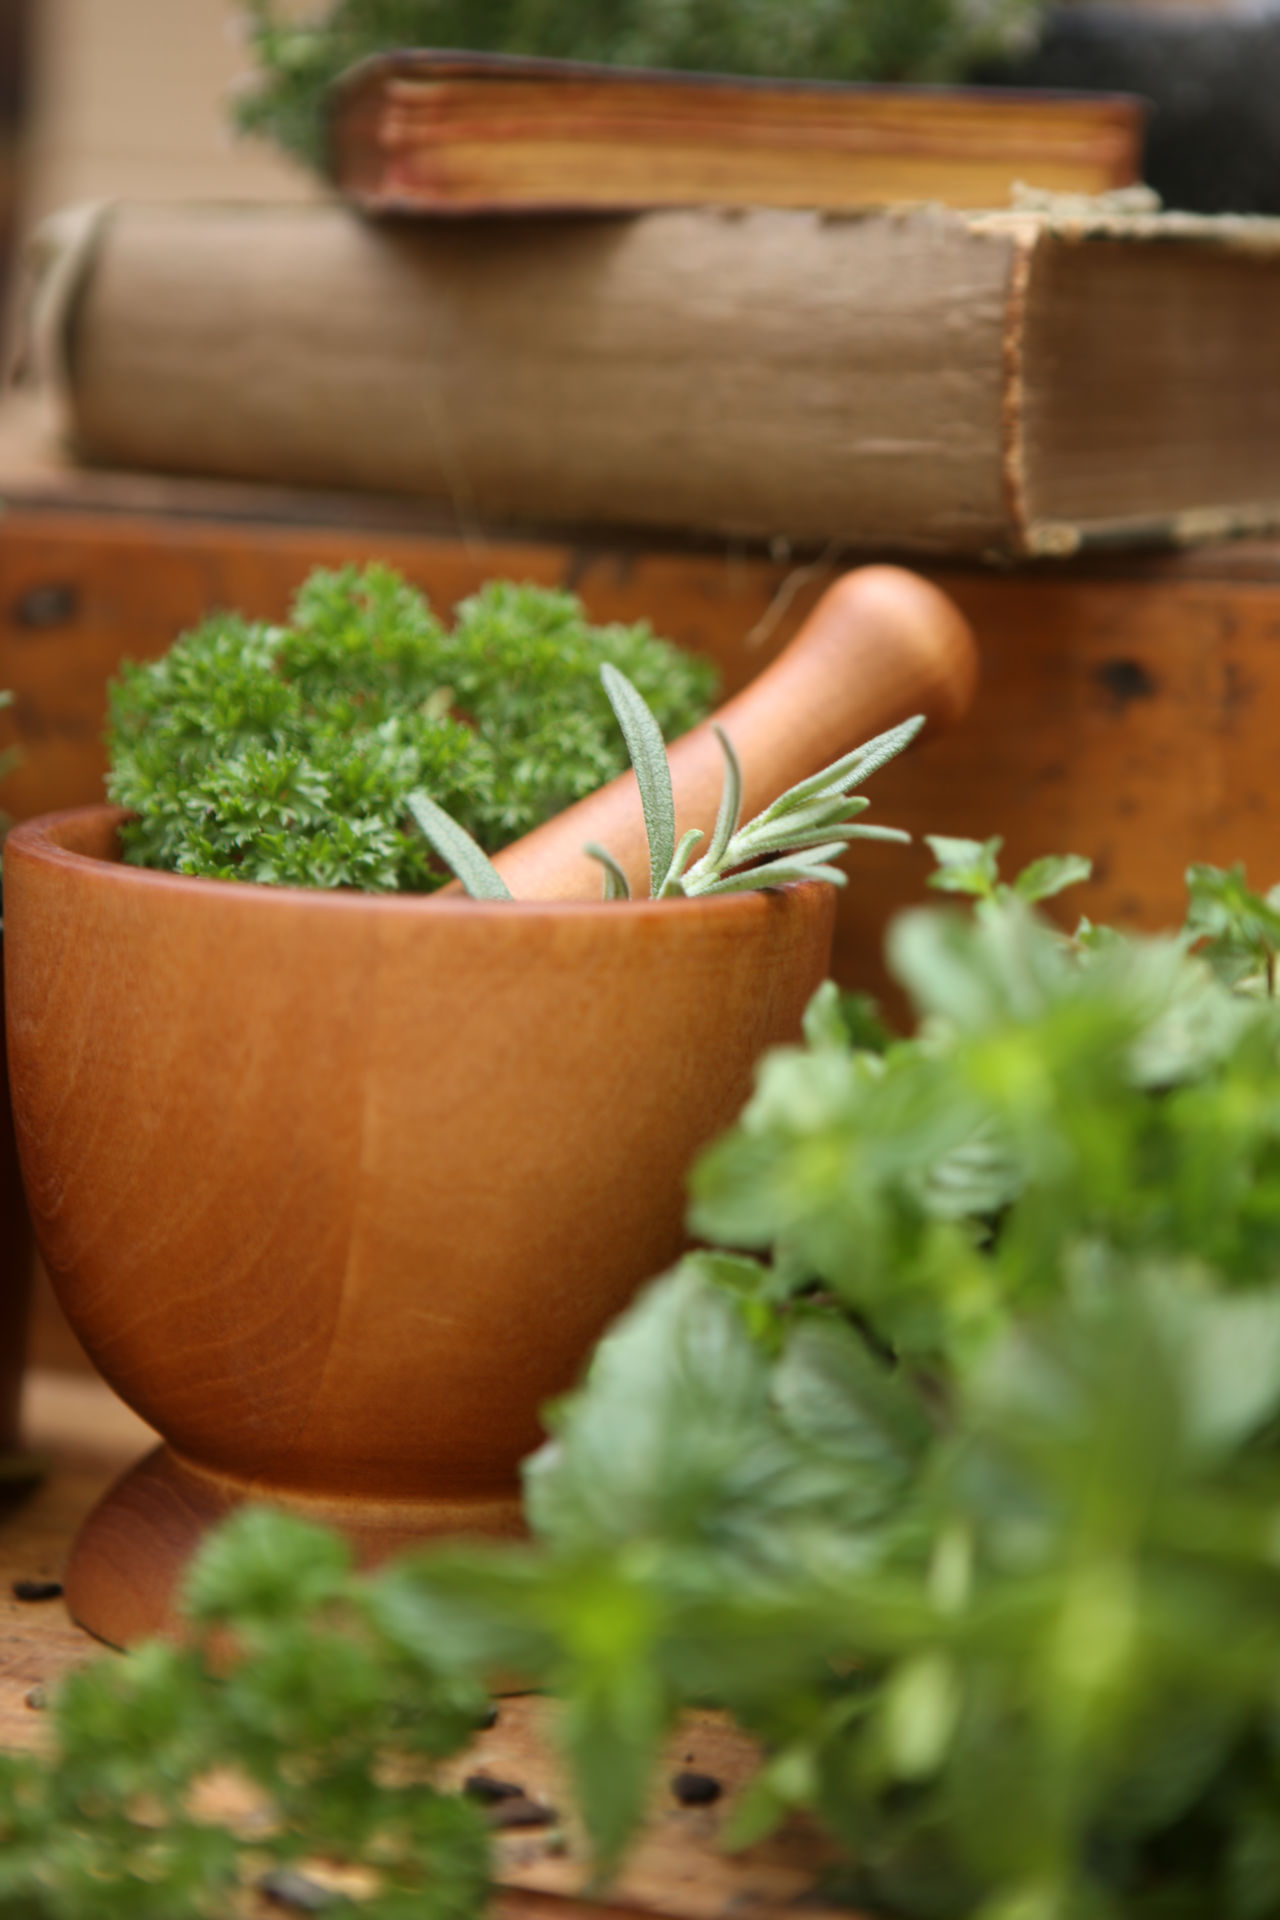 Working with herbs Close-up Day Freshness Green Color Herbal Herbal Medicine Indoors  Mortar Mortar And Pestle Mortar Pestle Nature Plant